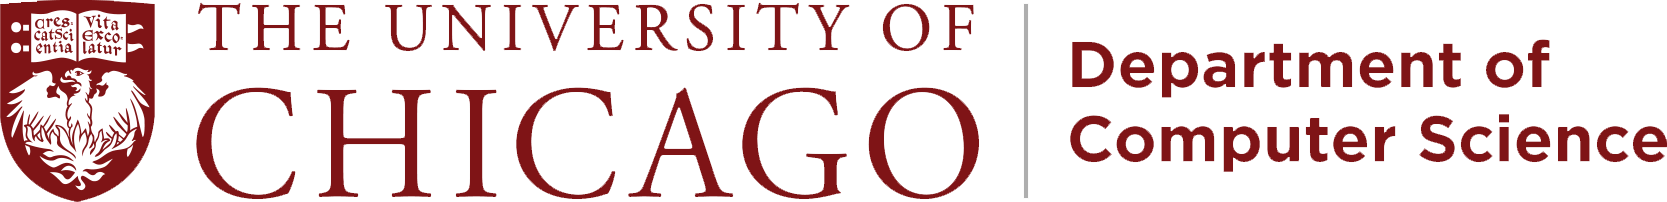 The University of Chicago Department of Computer Science